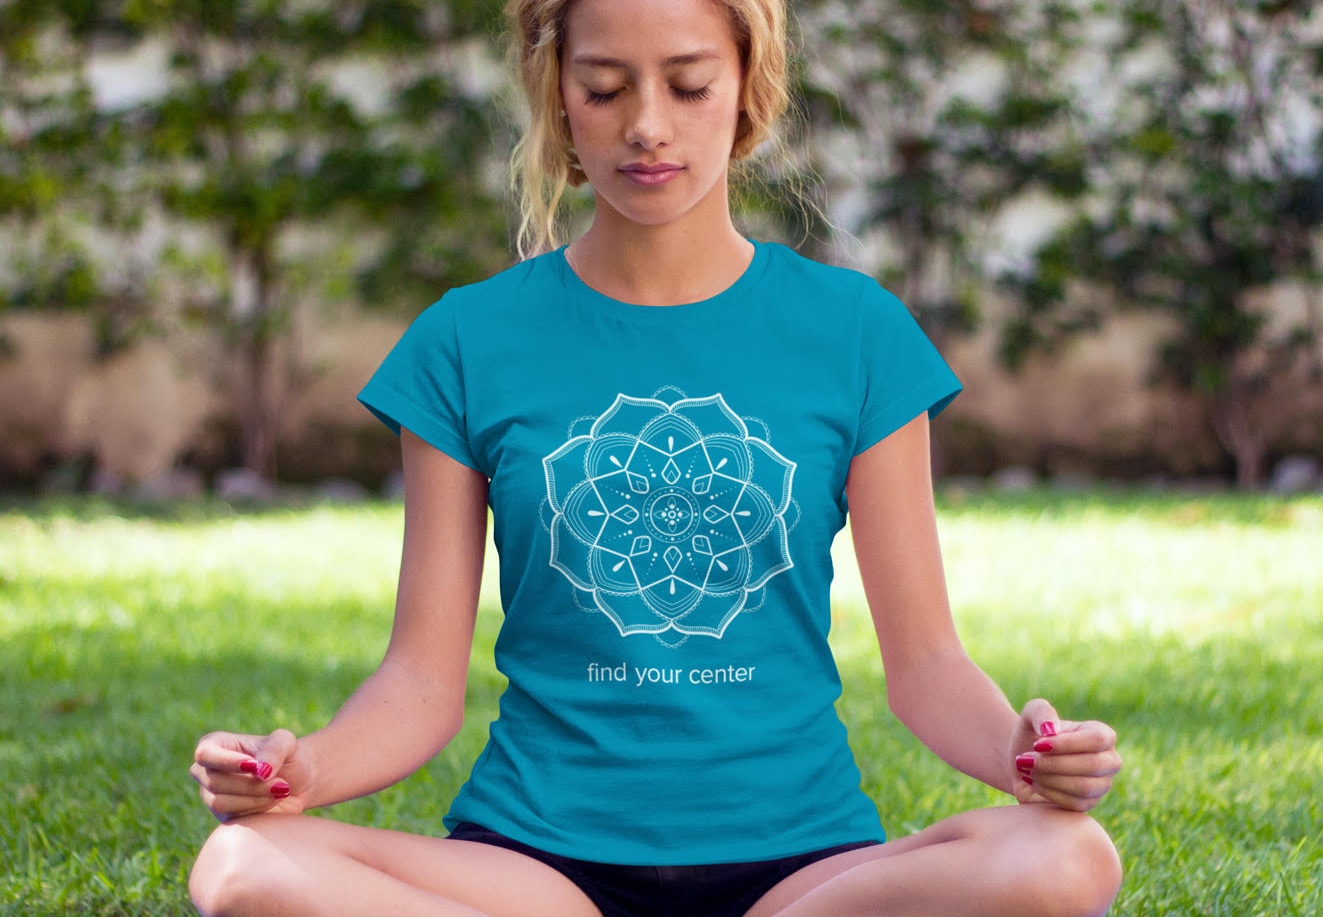 Love Tee - Reflect each other's goodness with love-inspired tees.Imagine being able to make a positive impact by the shirt you picked out this morning. Or the bag you carry when you walk down the street. What you wear can inspire and uplift everyone who sees it. The one small choice can start a ripple effect, connecting you with other people, and reminding them of the goodness that surrounds them. Love Tee is here to help you spread more love in the world, one t-shirt at a time.@loveteeshopwww.lovetee.co